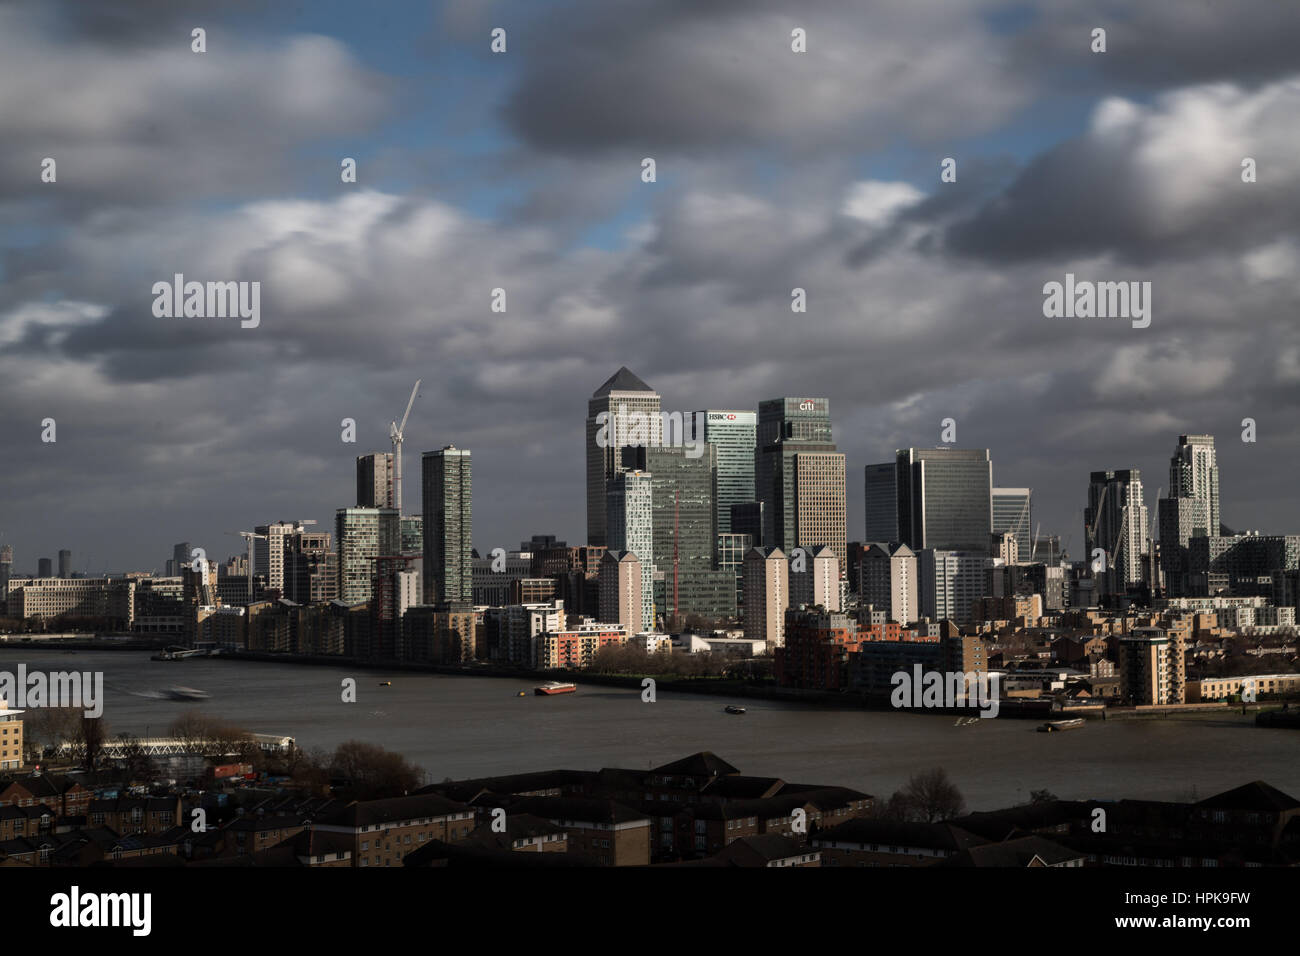 London, UK. 23rd February, 2017. UK Weather: Storm Doris brings fast moving clouds over Canary Wharf, London. Credit: Stock Photo